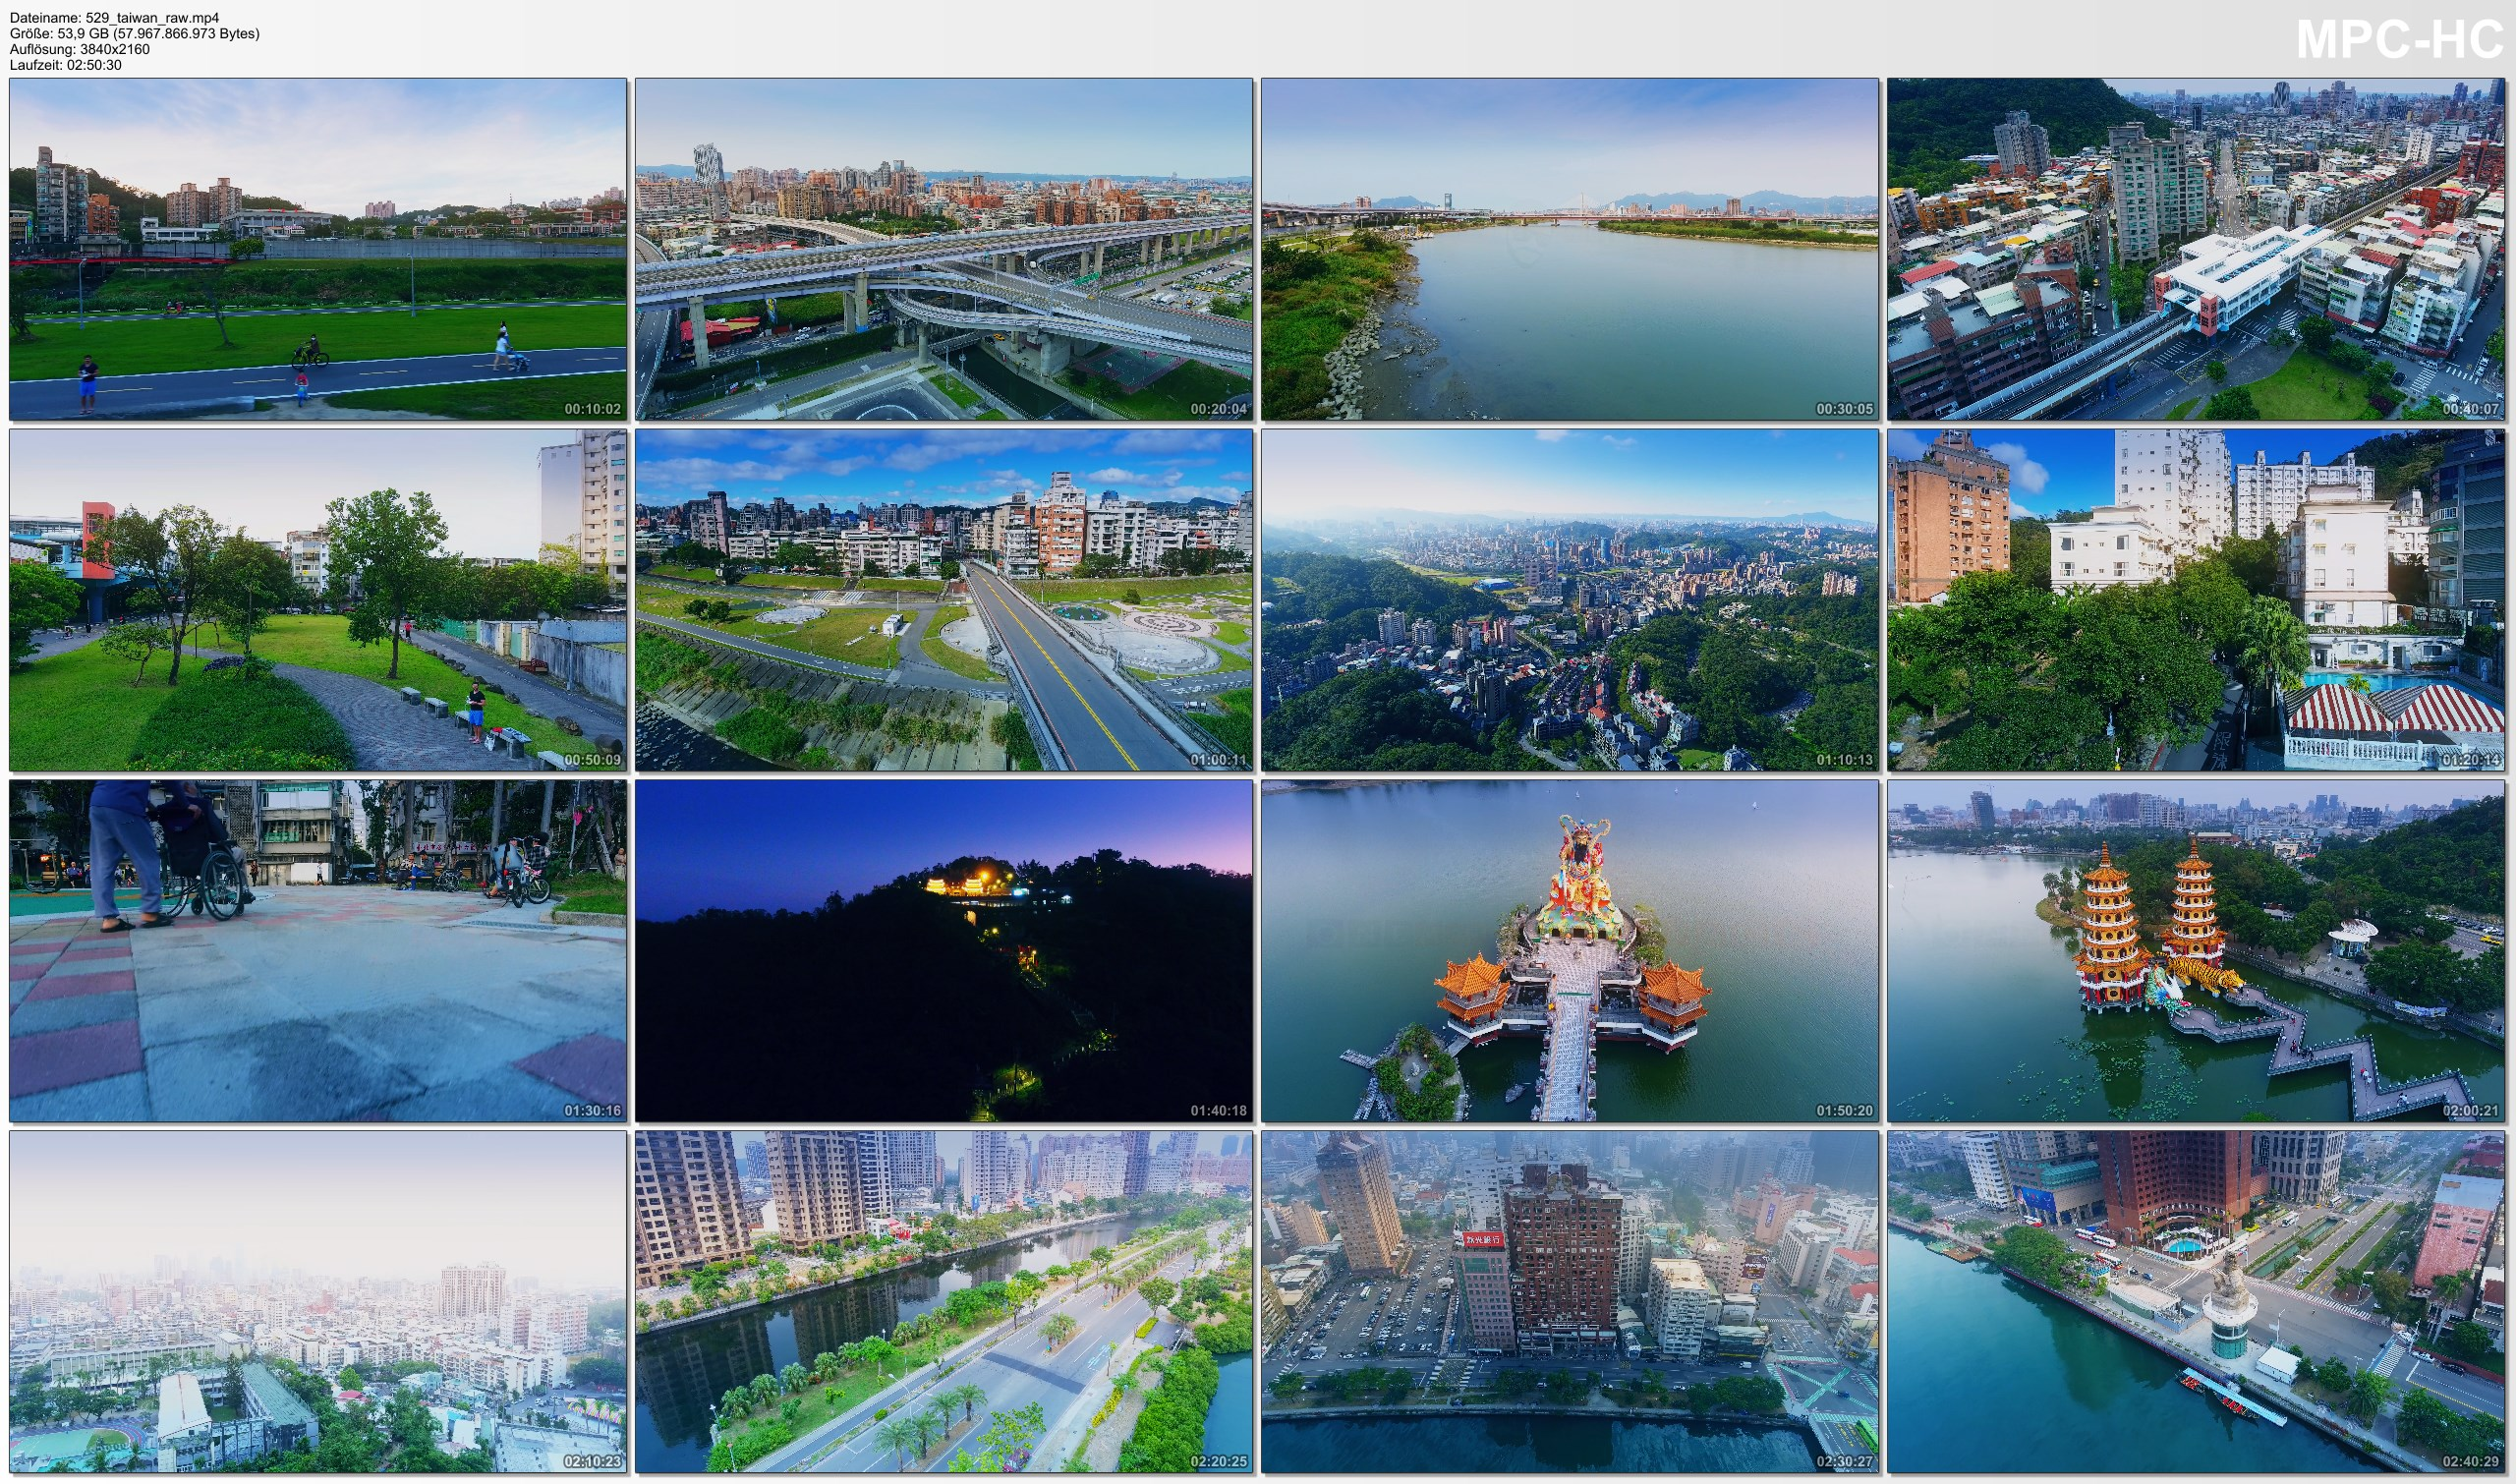 Drone Pictures from Video 【4K】Drone RAW Footage | This is TAIWAN 2020 | Capital City Taipei | Kaohsiung | UltraHD Stock Video